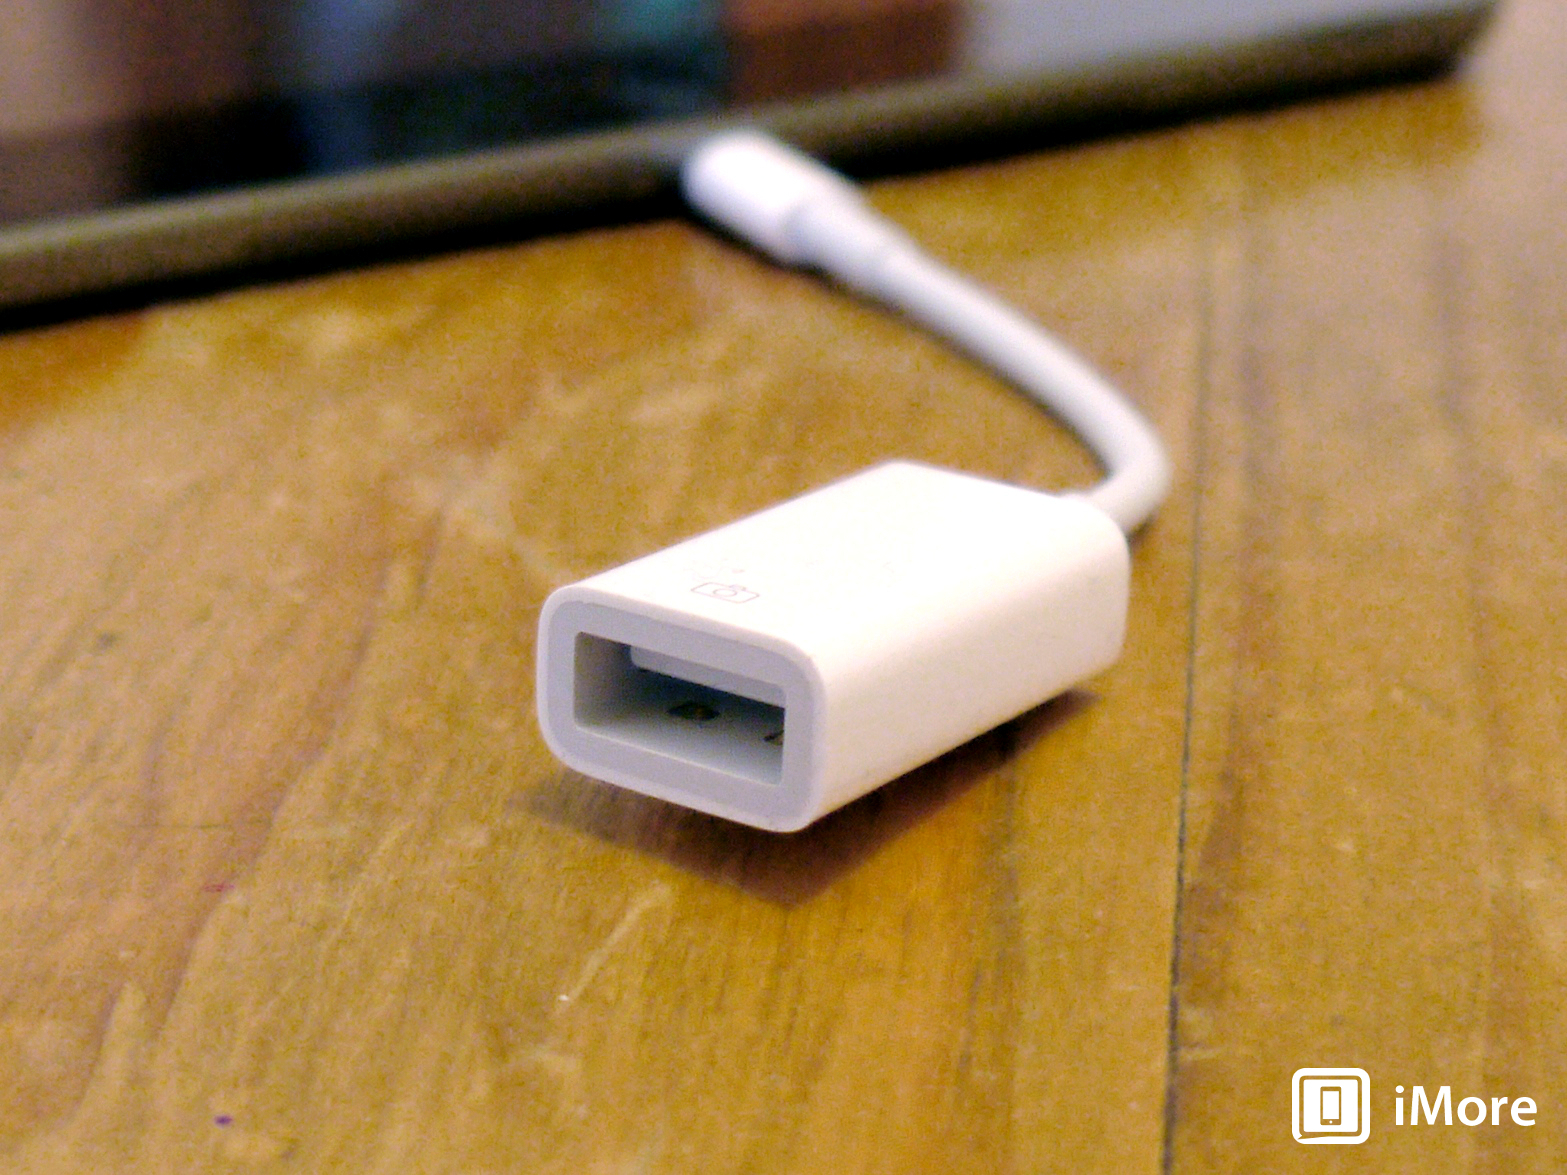 Going Beyond Cameras With The Apple Lightning To Usb Adapter | Imore - Ipad Usb Wiring Diagram